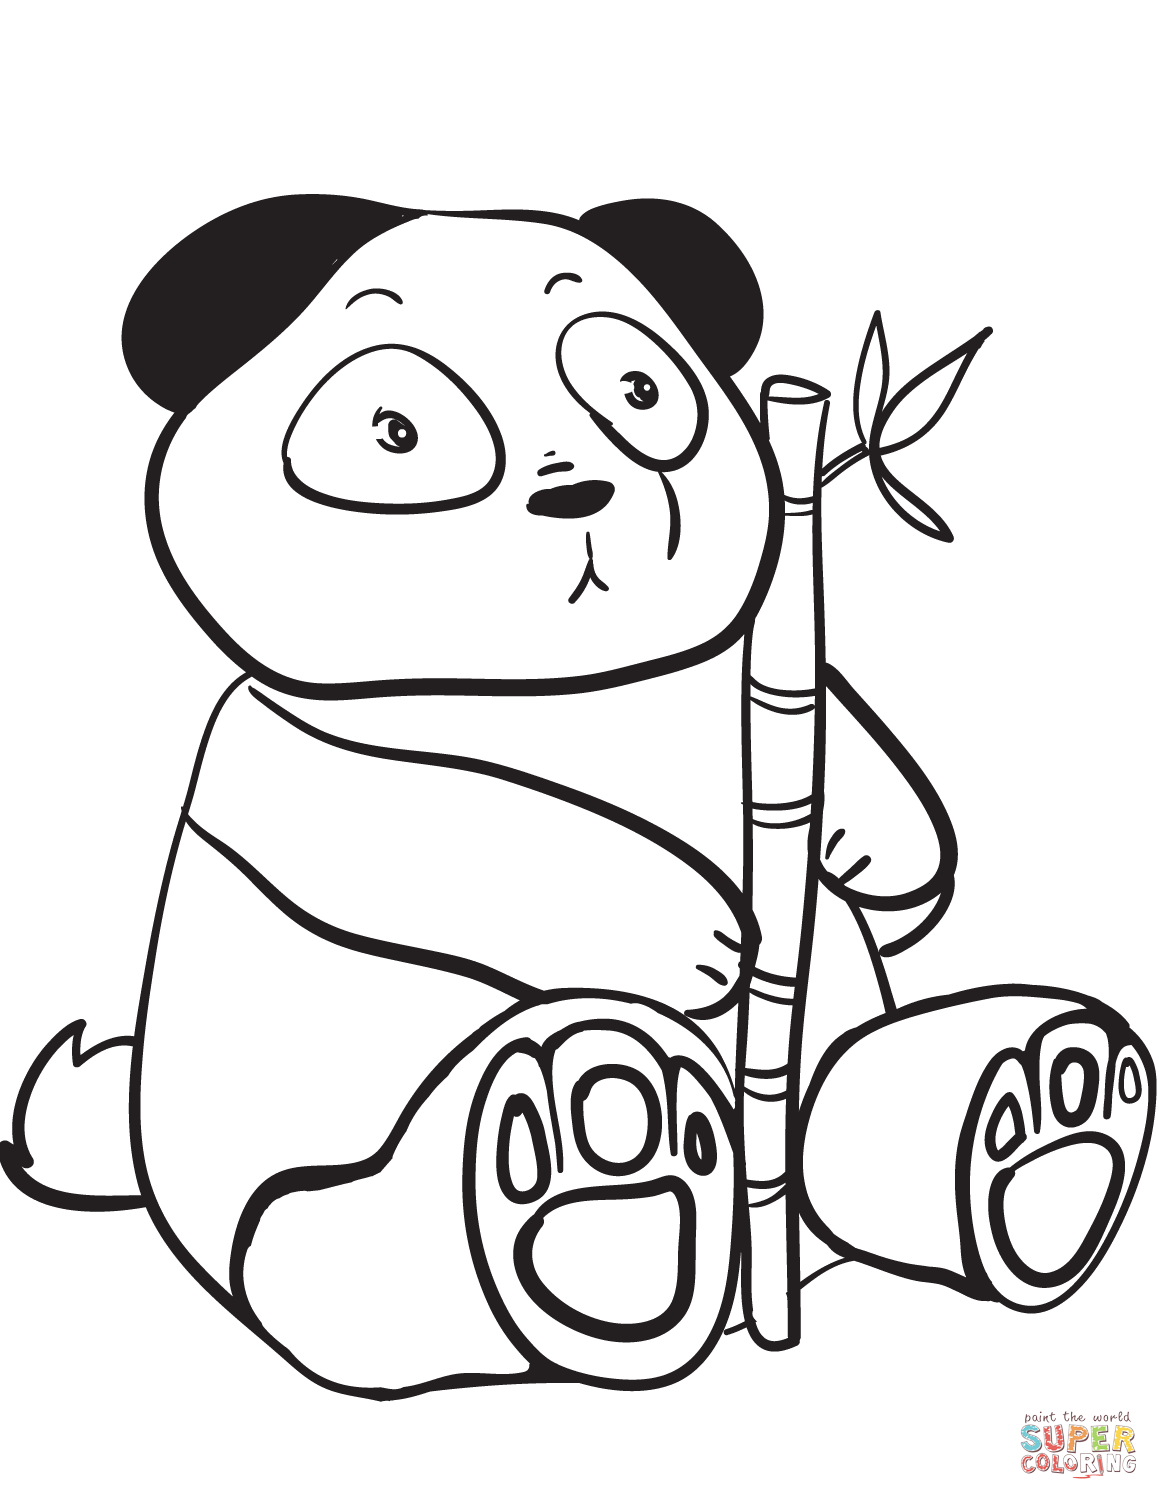 Cute Panda Holding A Bamboo Branch Coloring Page